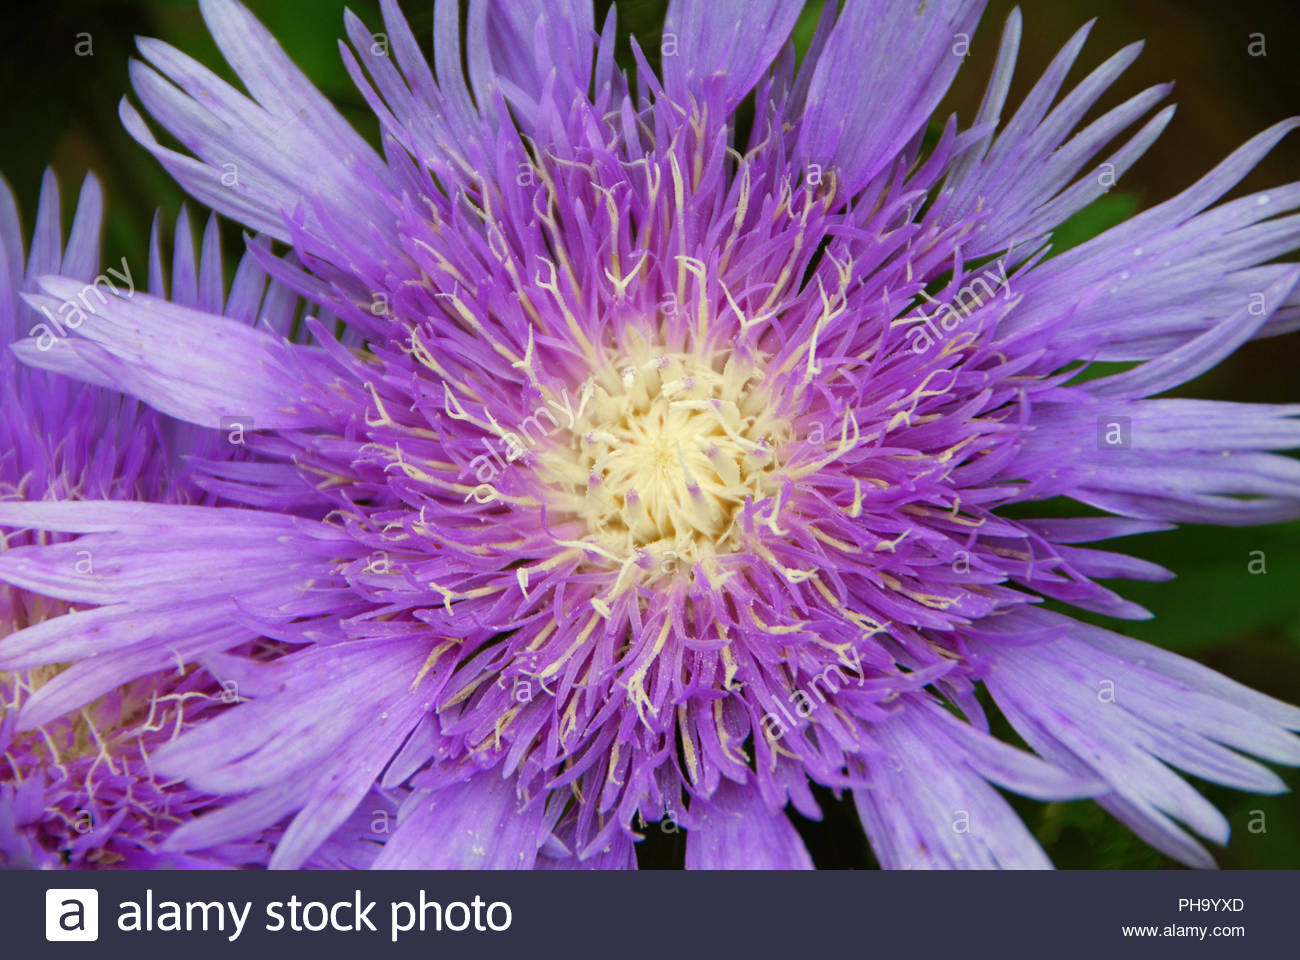 Purple Pink Stokes Aster Stokesia Laevis Flower In Bloom In Early